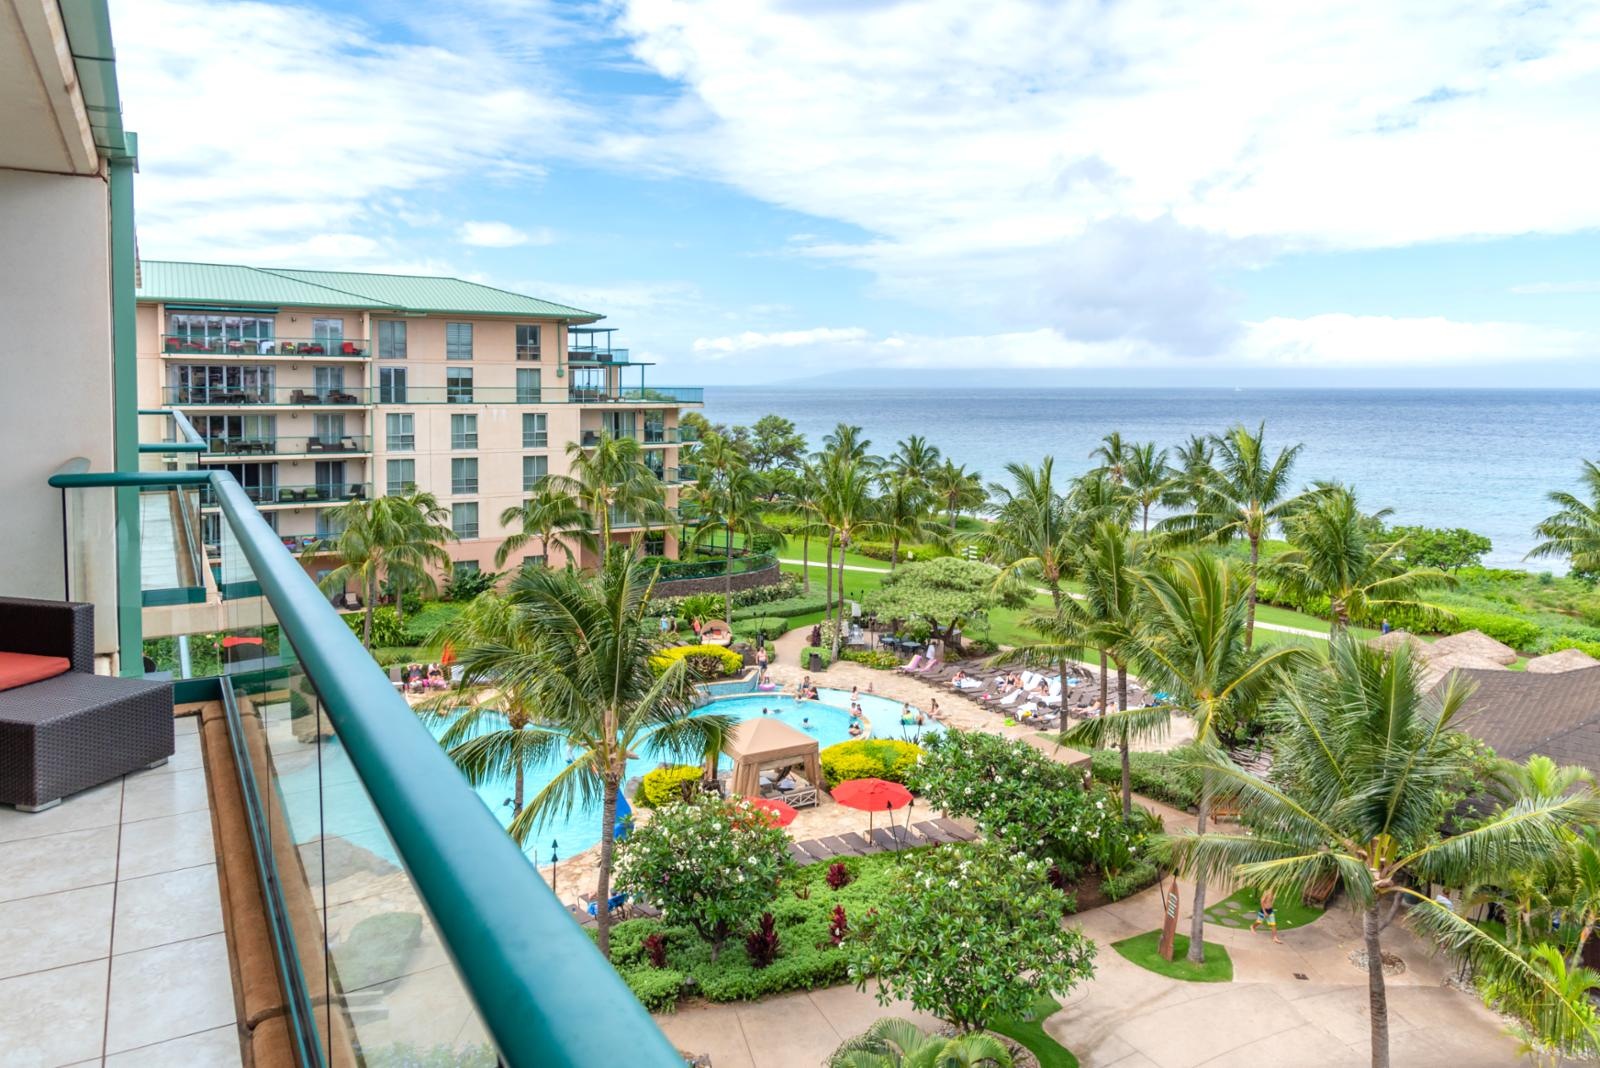 View of the island of Lanai to the left side of balcony